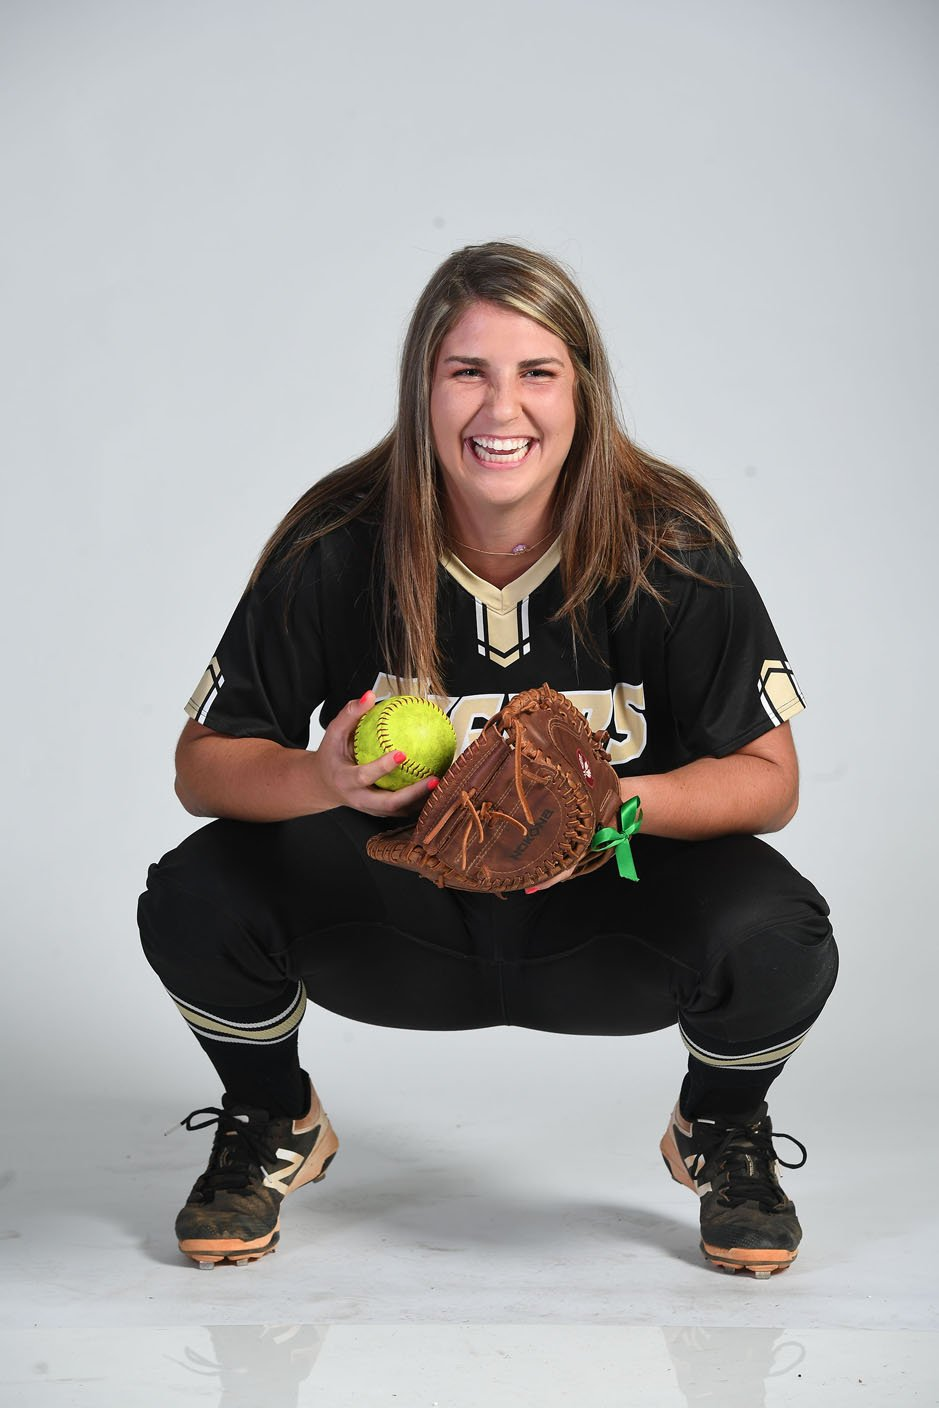 NWA Democrat-Gazette/J.T. WAMPLER Haley Cornell of Bentonville. Player of the Year